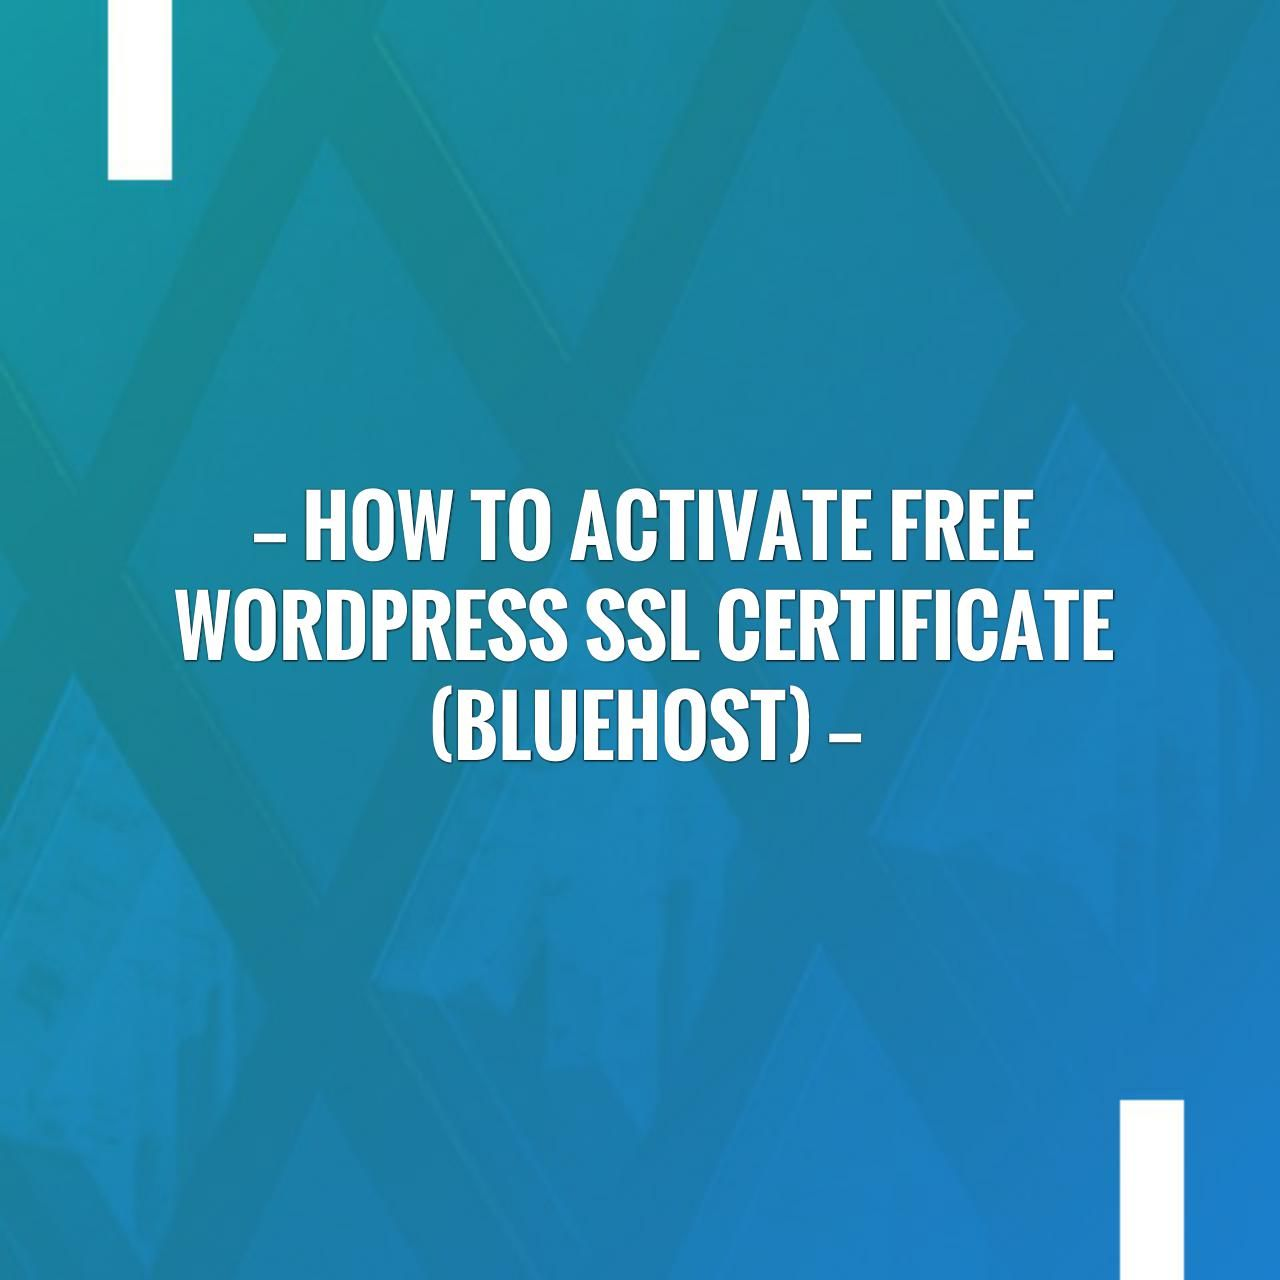 How to activate free wordpress ssl certificate bluehost http how to activate free wordpress ssl certificate bluehost httpfeedproxy xflitez Choice Image